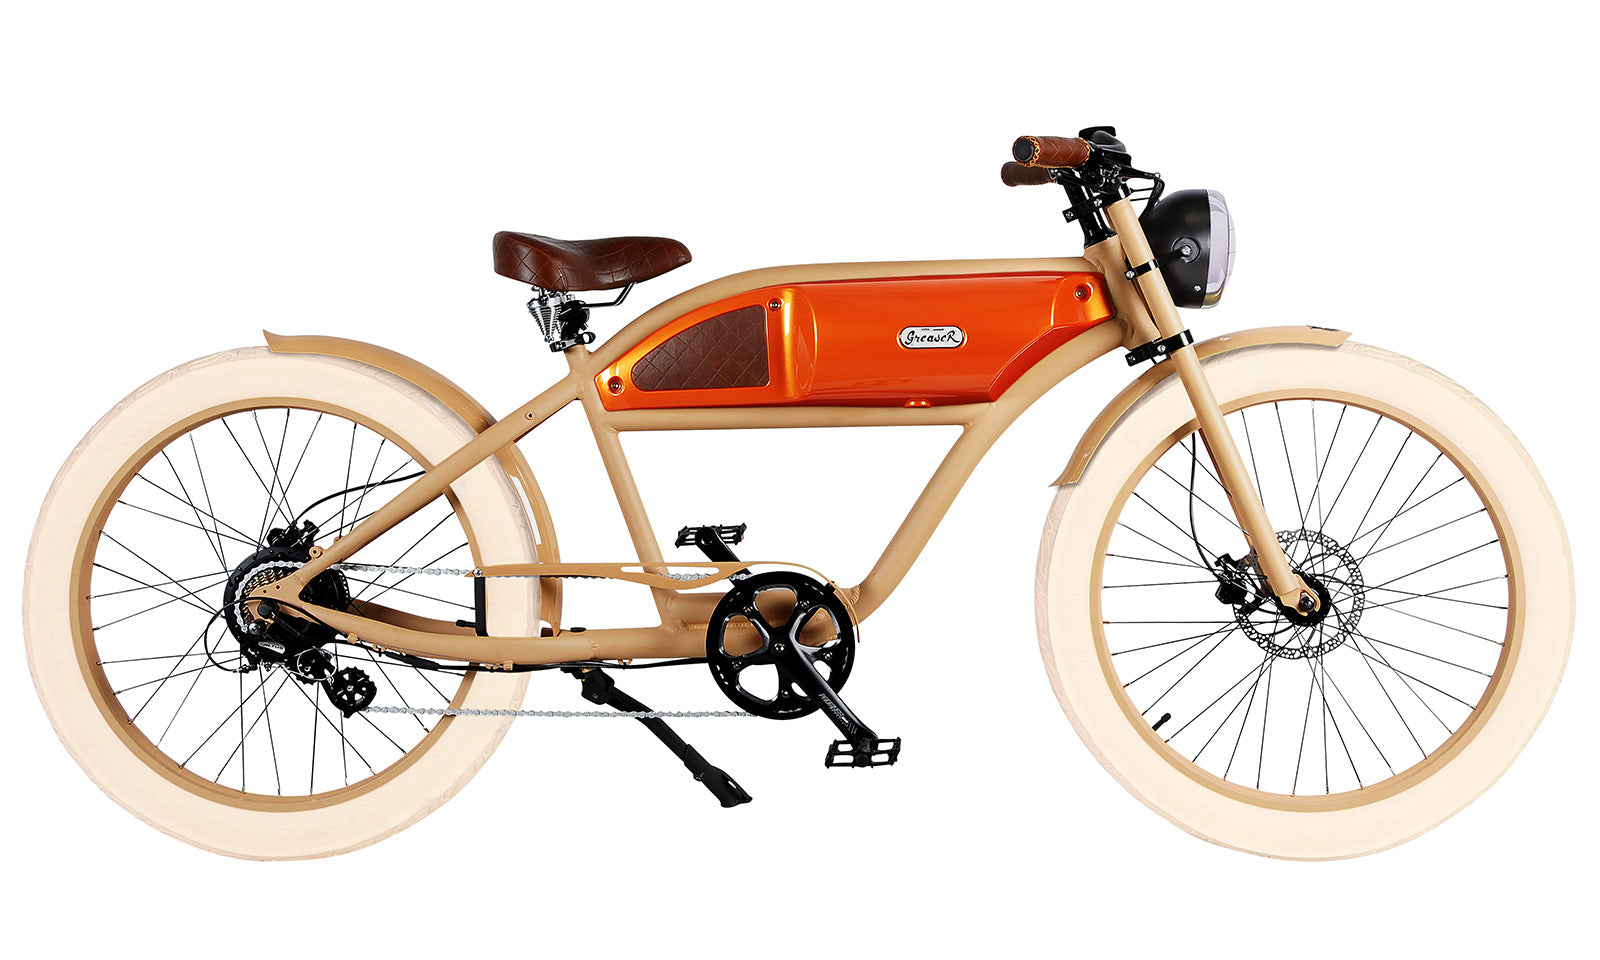 Sand Orange Tank Brown Accents Tan Tire